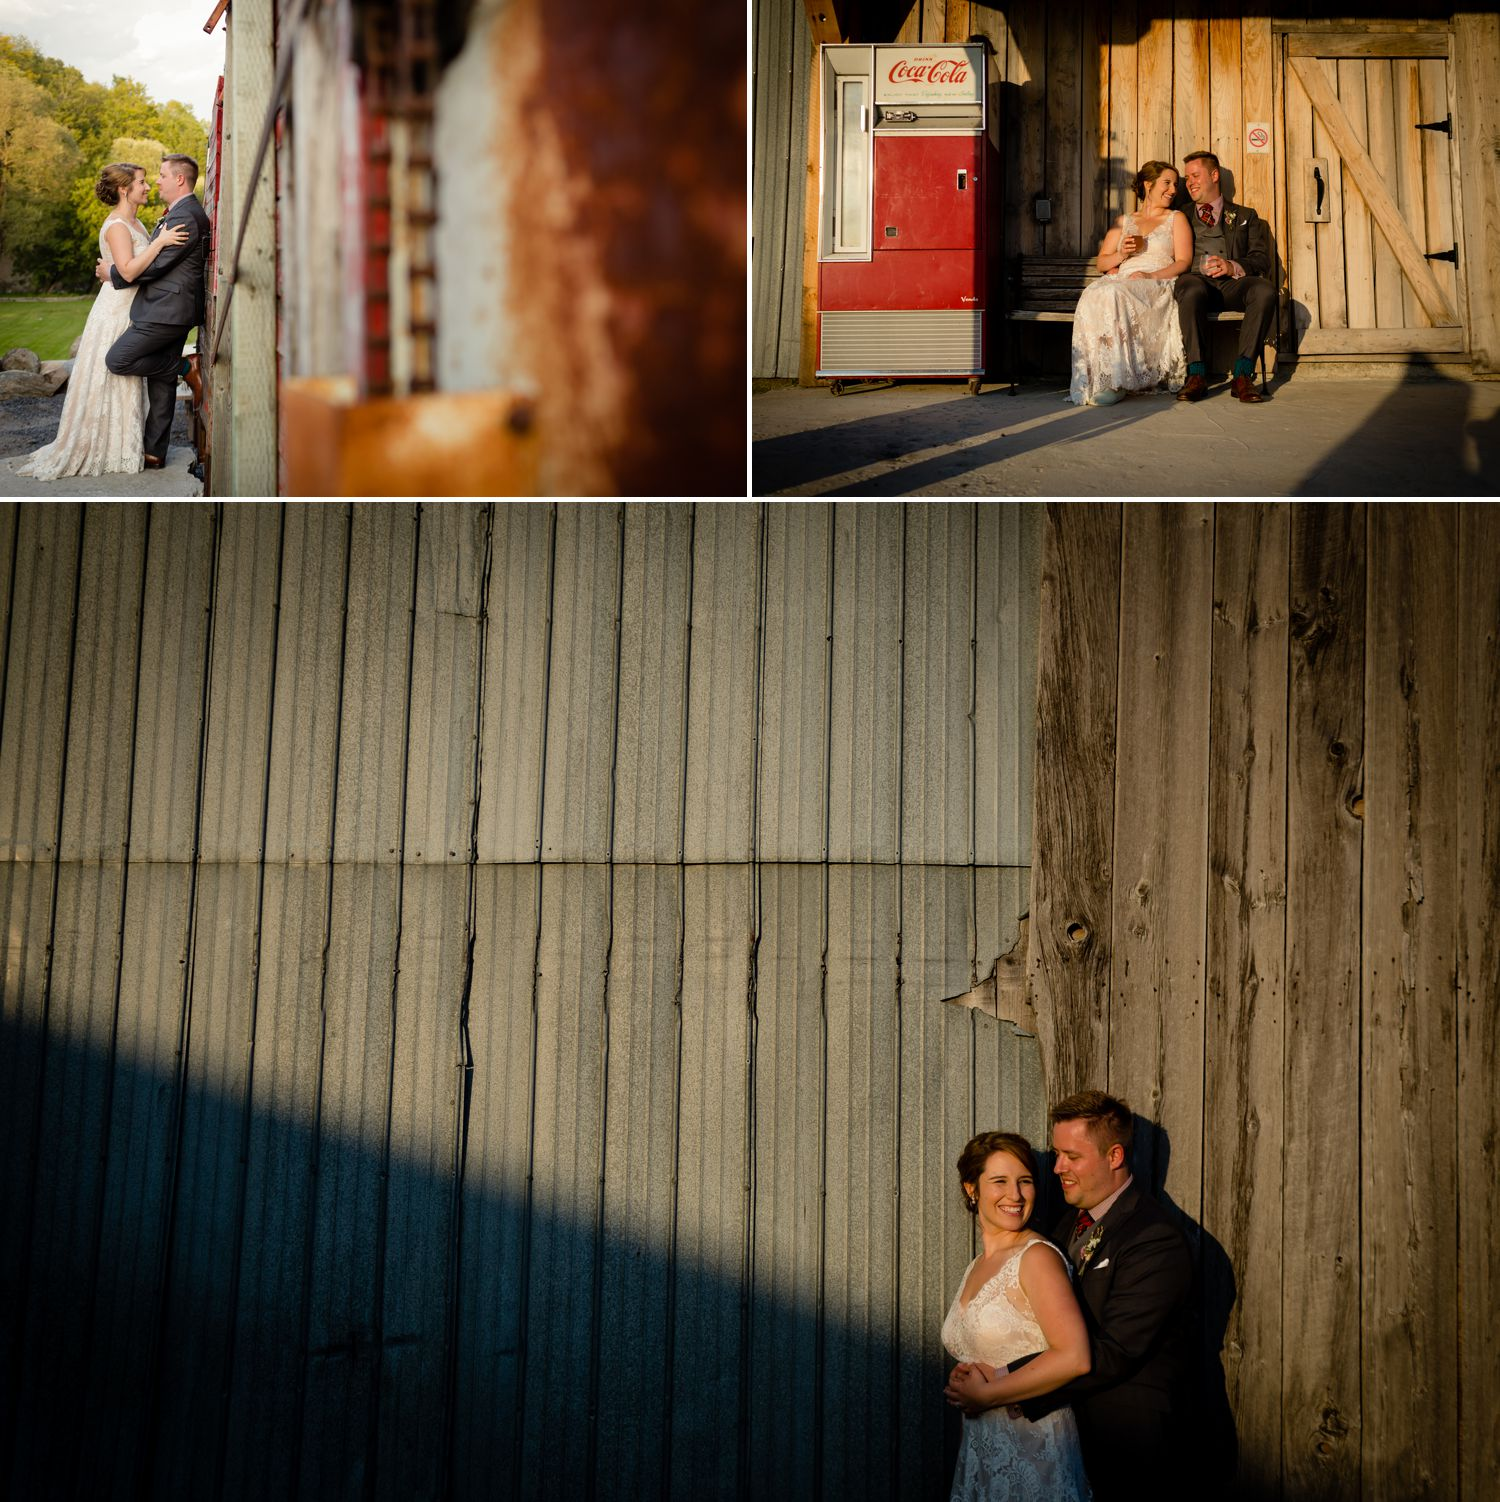 Evening portraits of the bride and groom taken outside the Haymow Farm in Ottawa